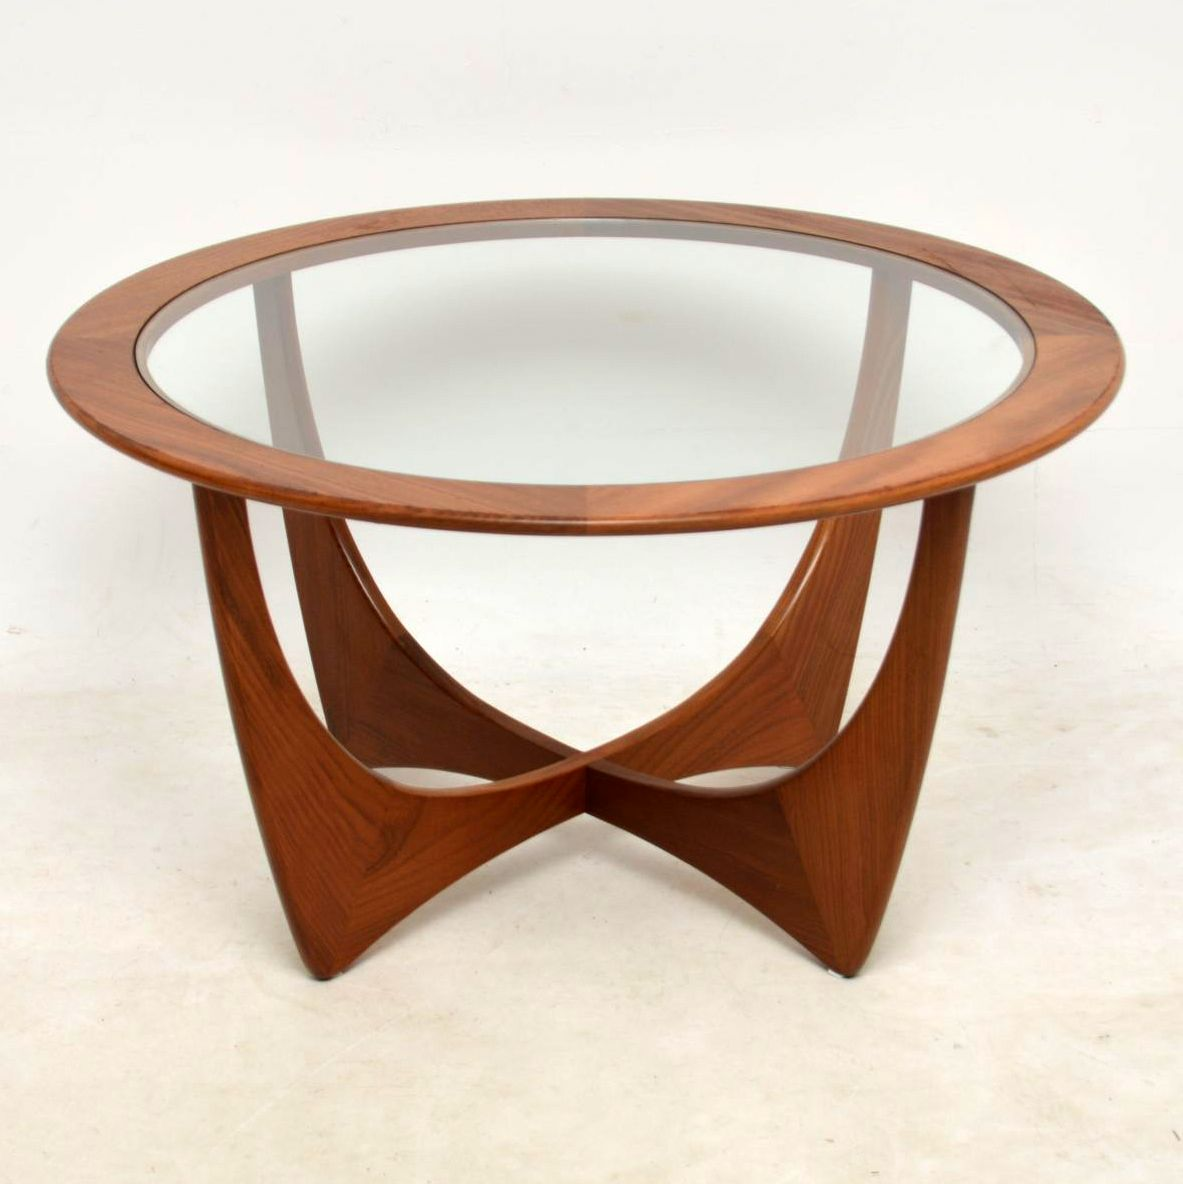 1960 S Vintage Teak Astro Coffee Table By G Plan